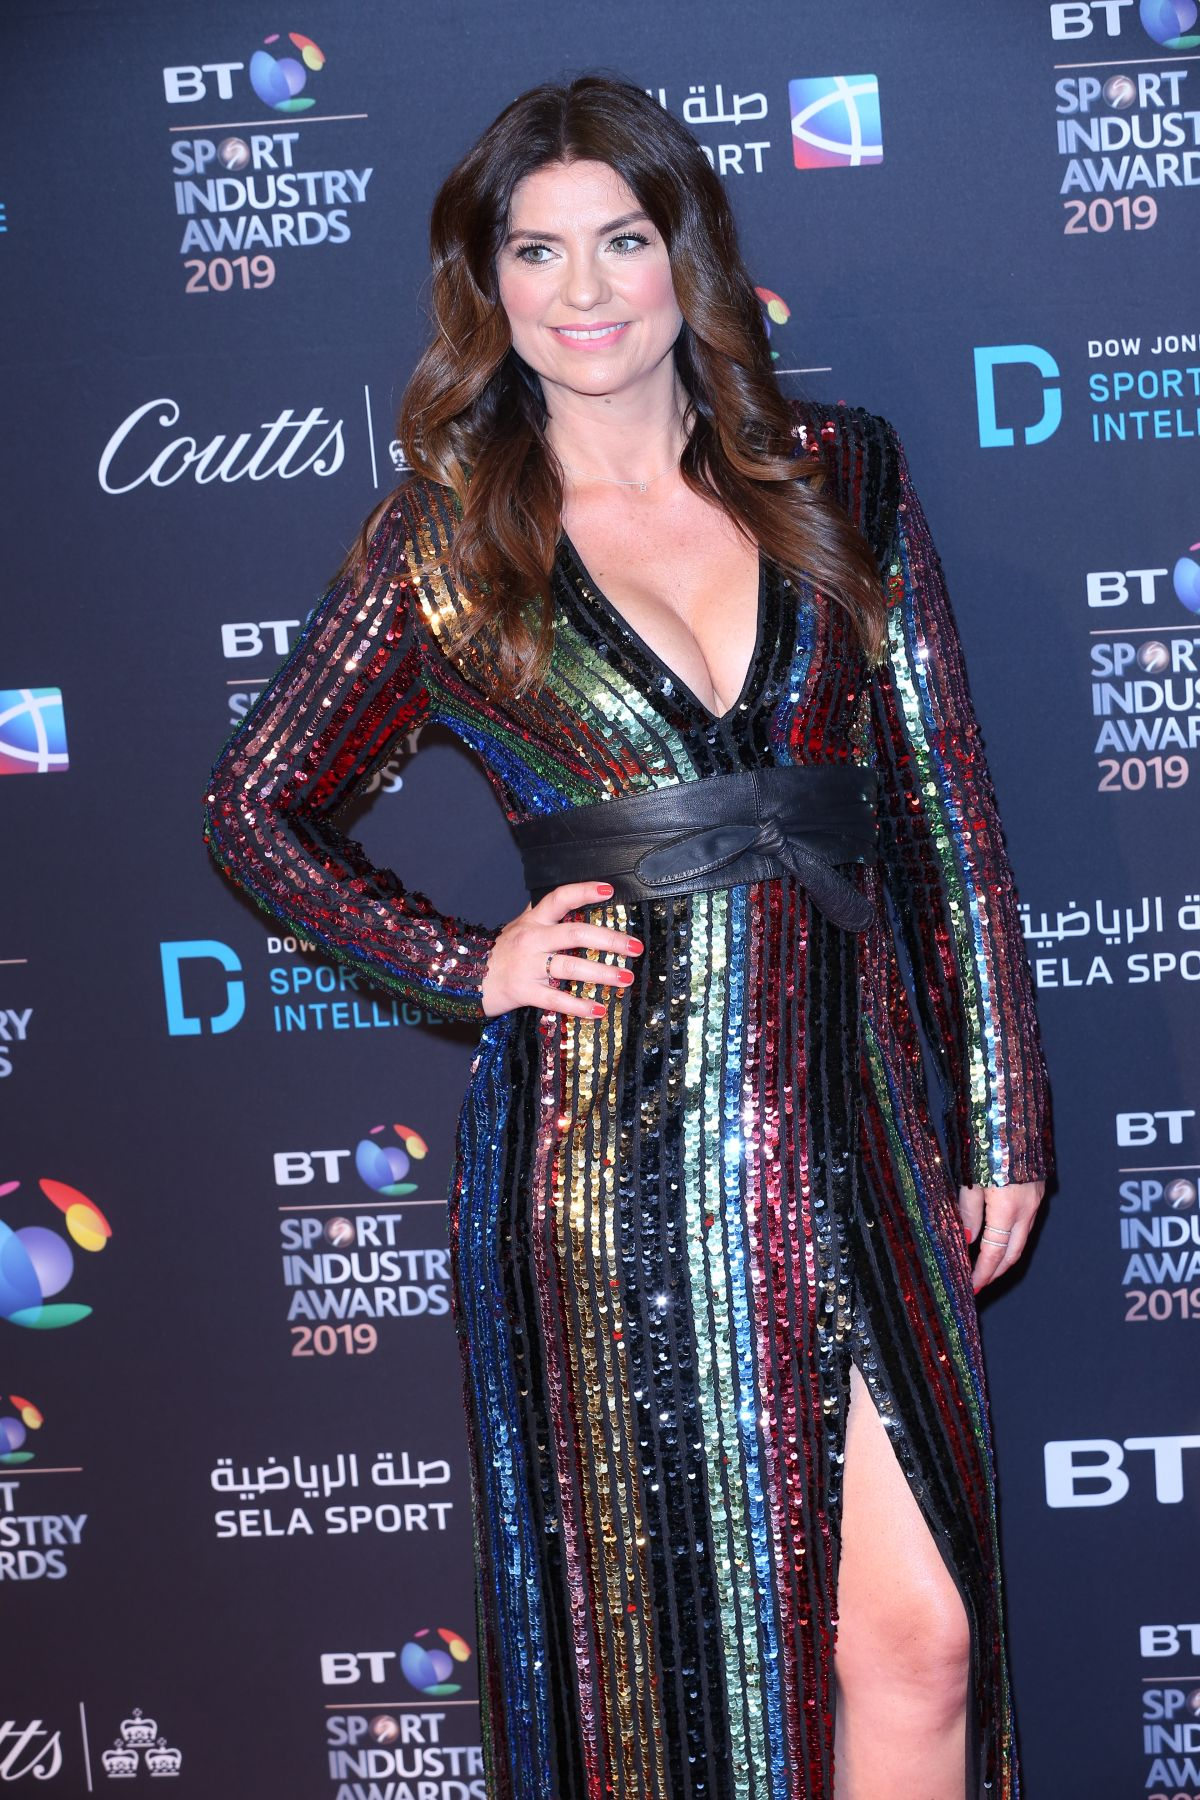 BIANCA WESTWOOD at BT Sport Industry Awards 2019 in London